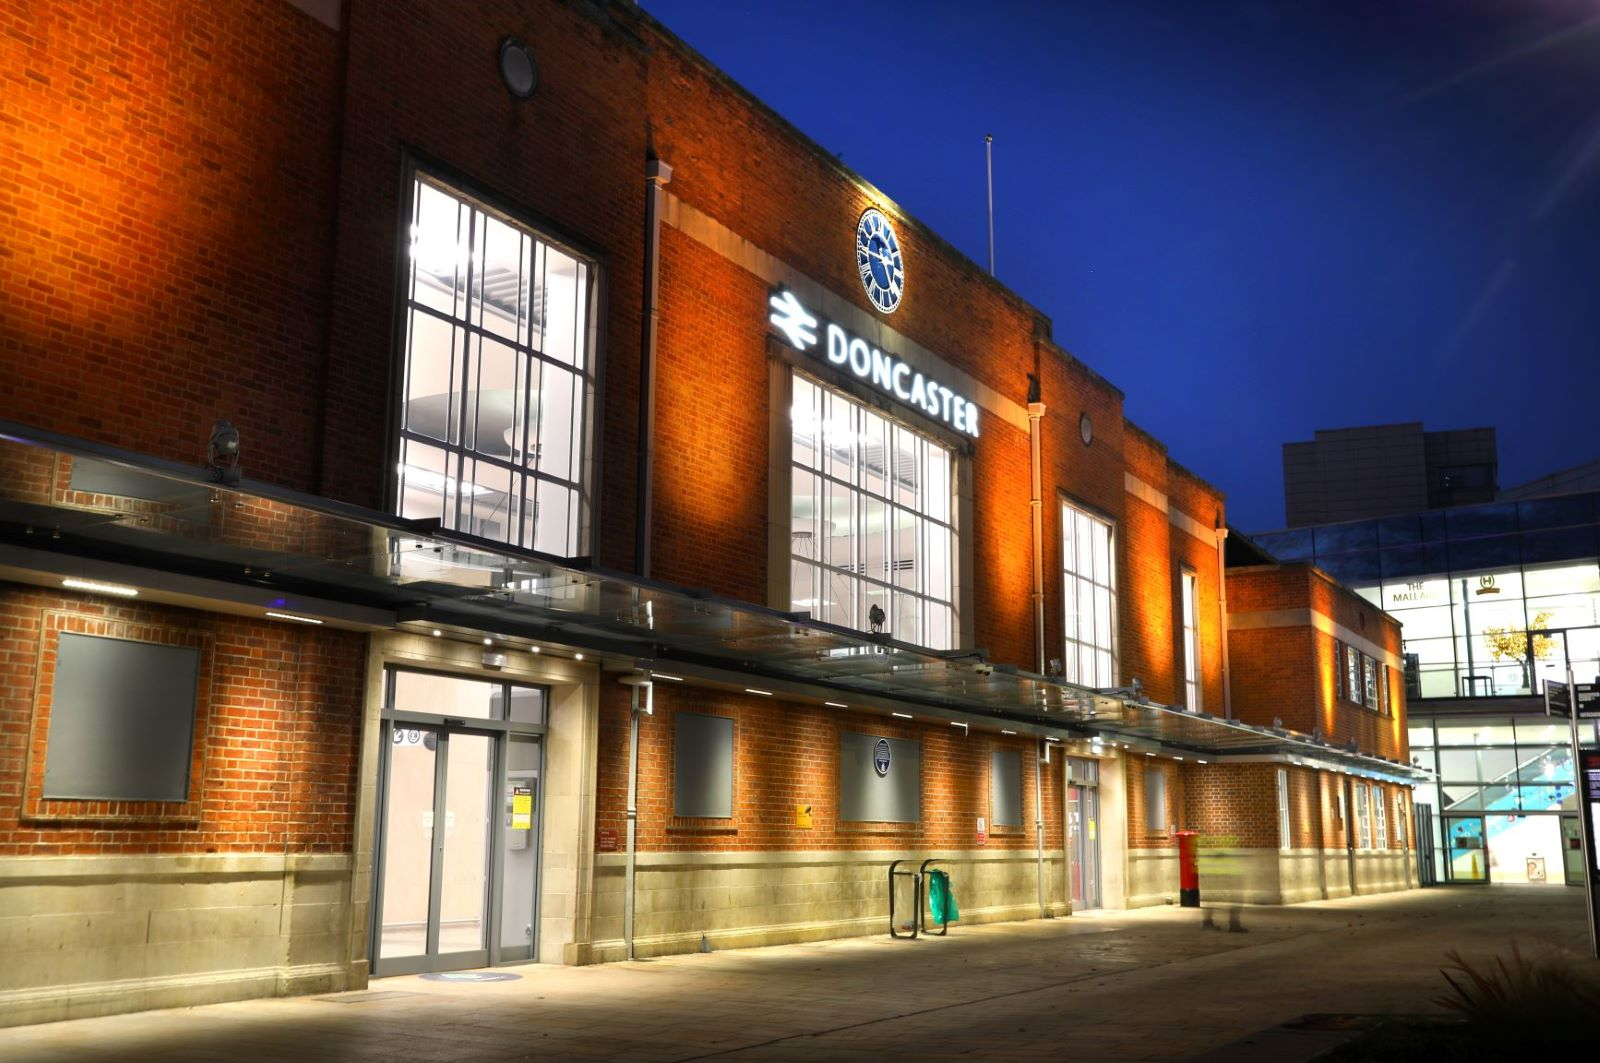 Doncaster Station Transformed To Give Visitors A Warm Welcome To The Region